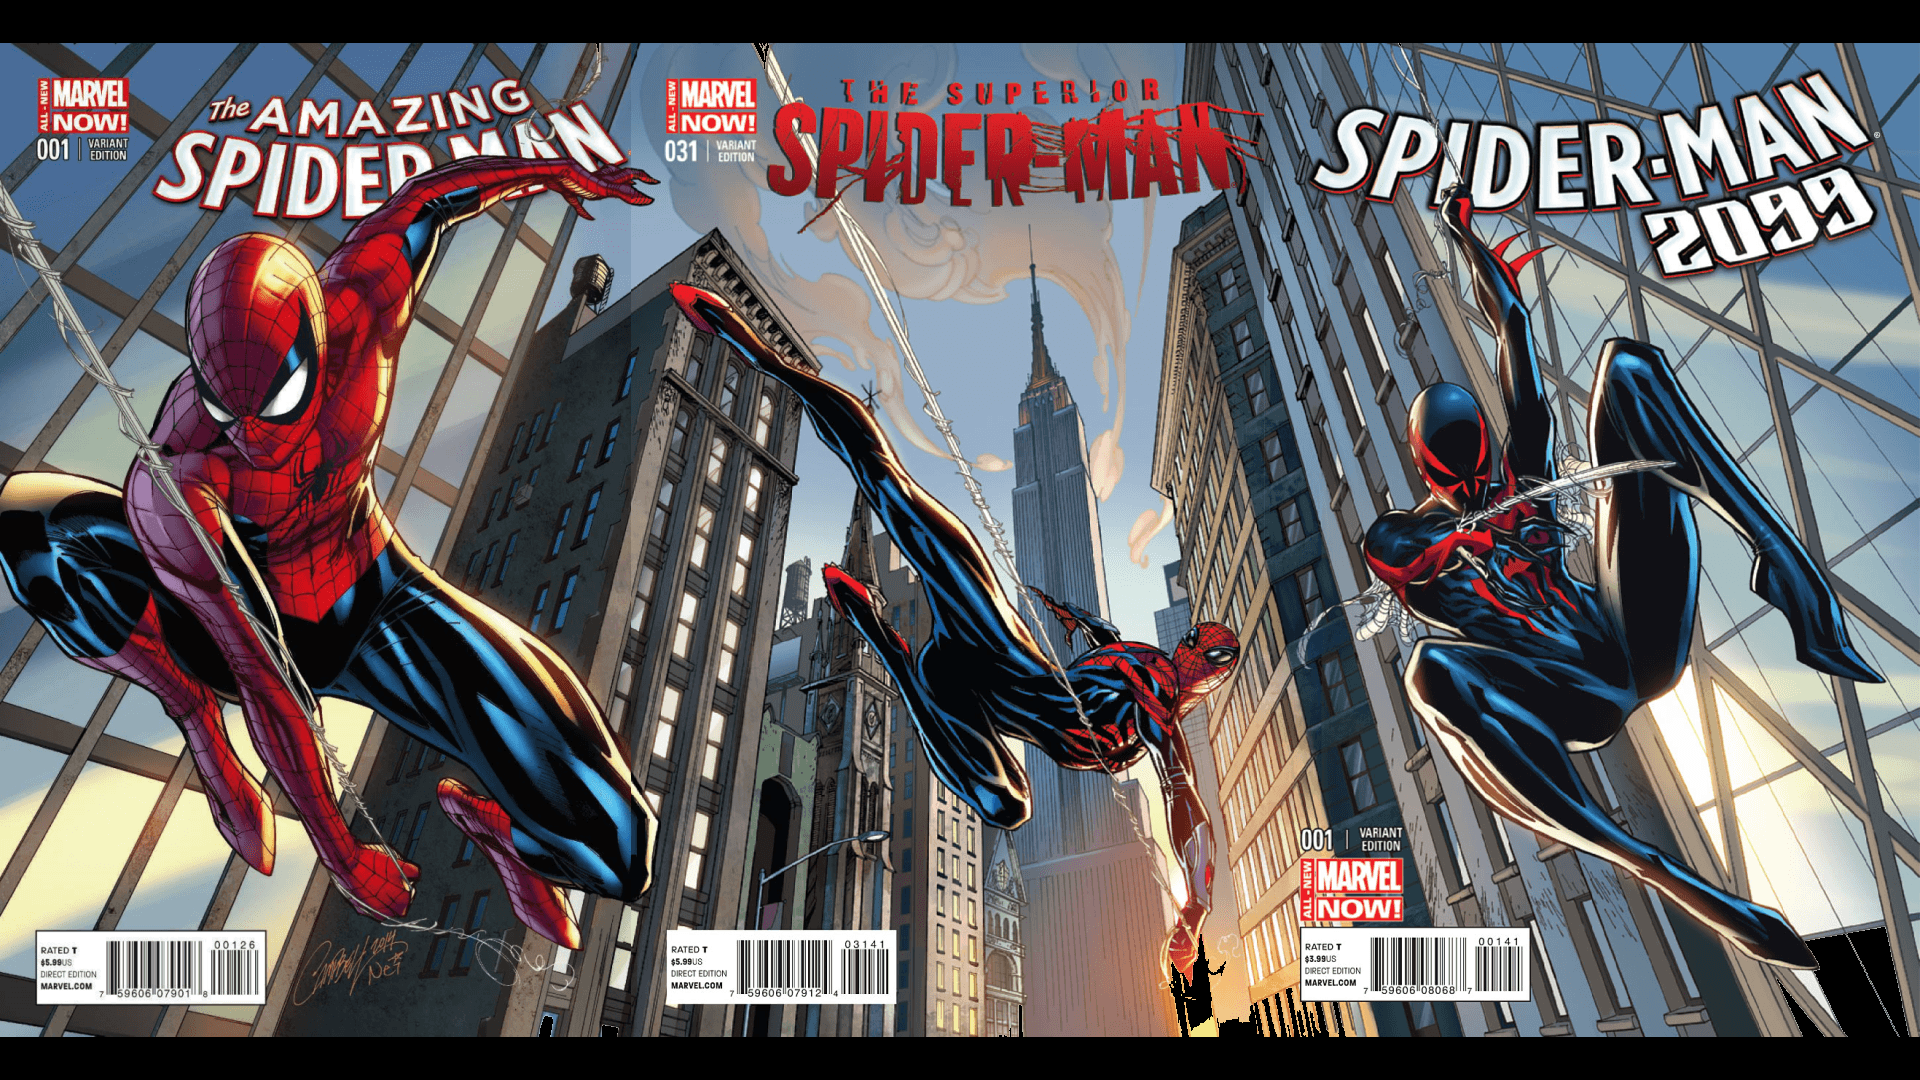 Spider-man Unlimited Comic Wallpapers | WallpapersIn4k.net